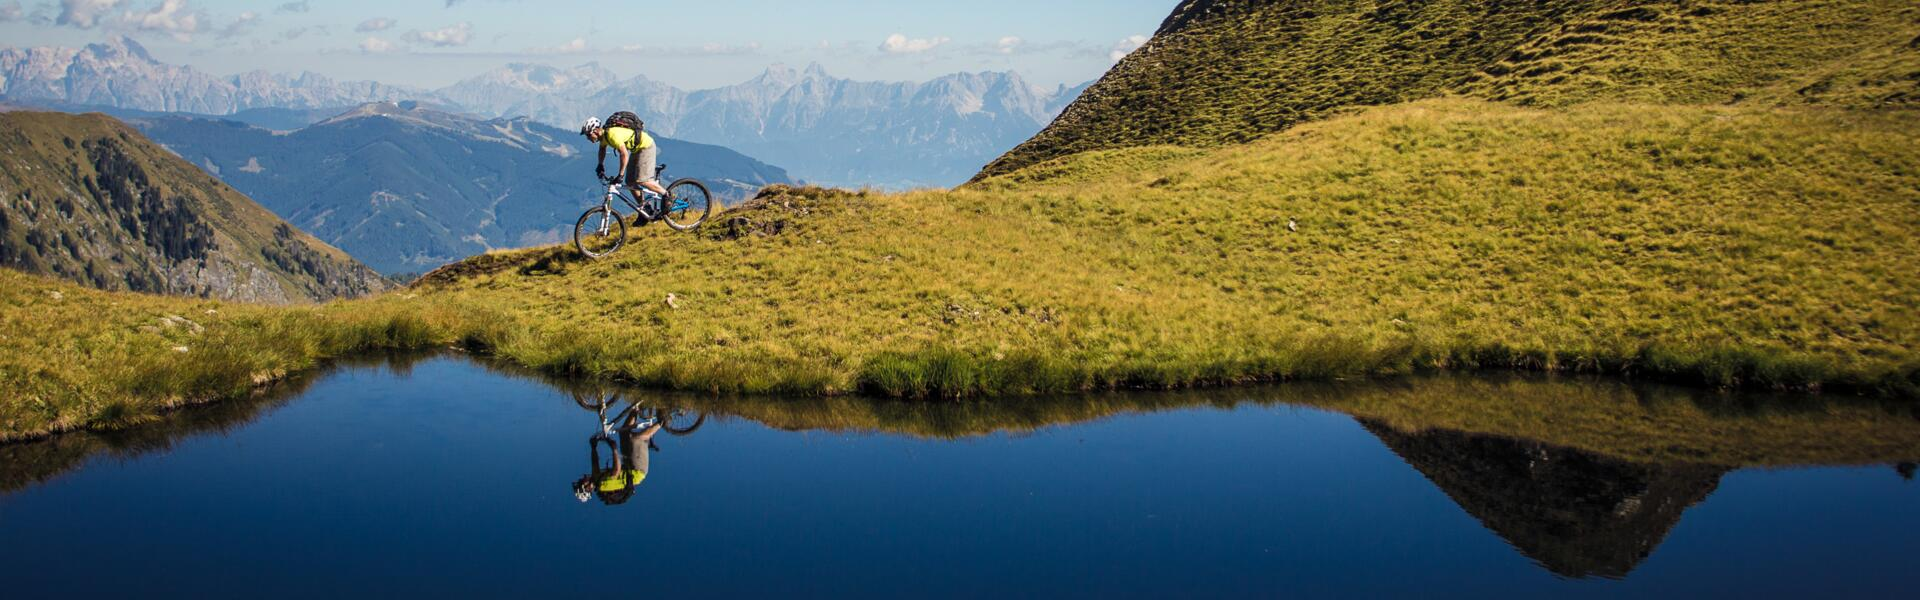 mountainbiking kaprun holiday